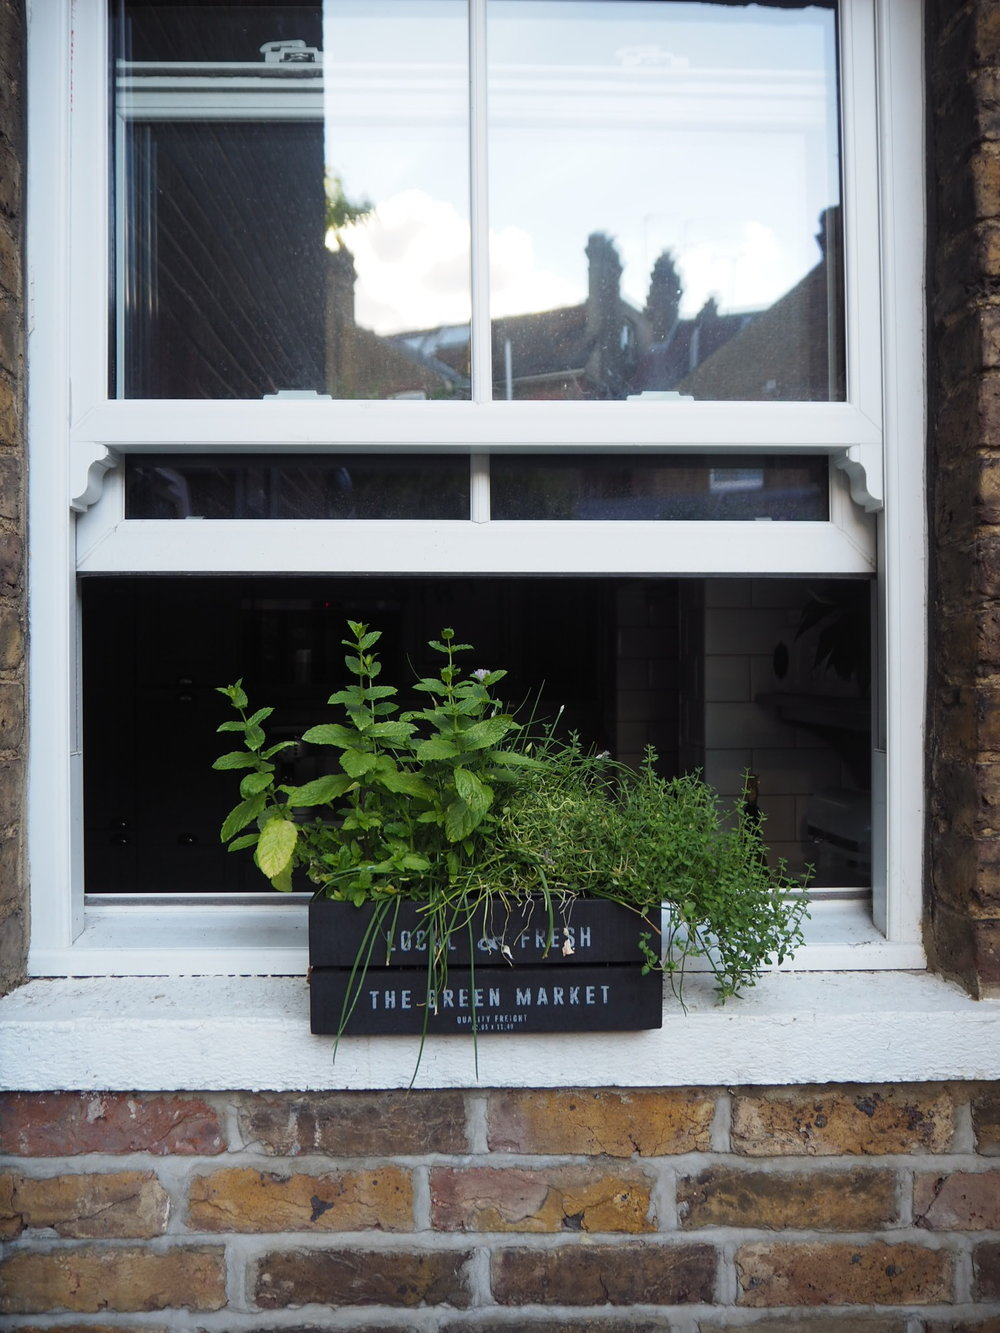 Everyone needs a herb window box like this.